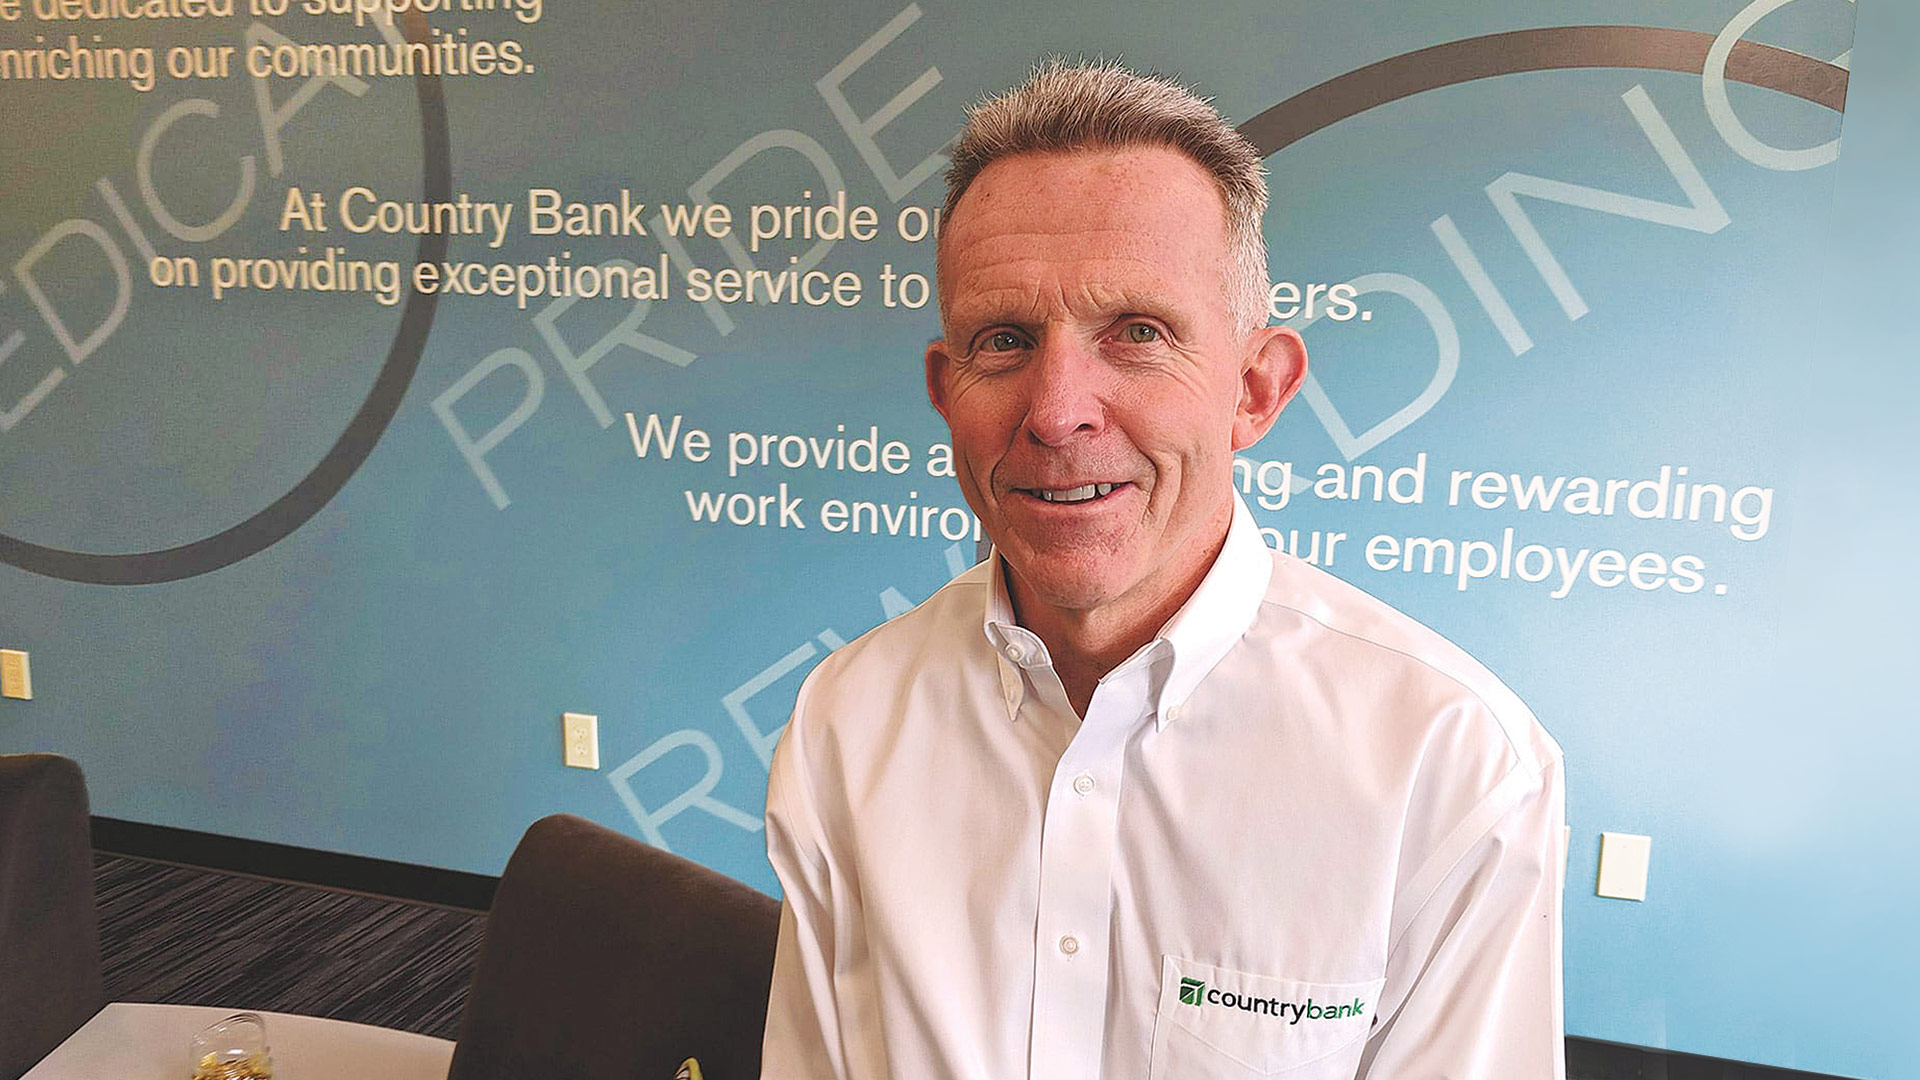 Paul Scully, president of Country Bank